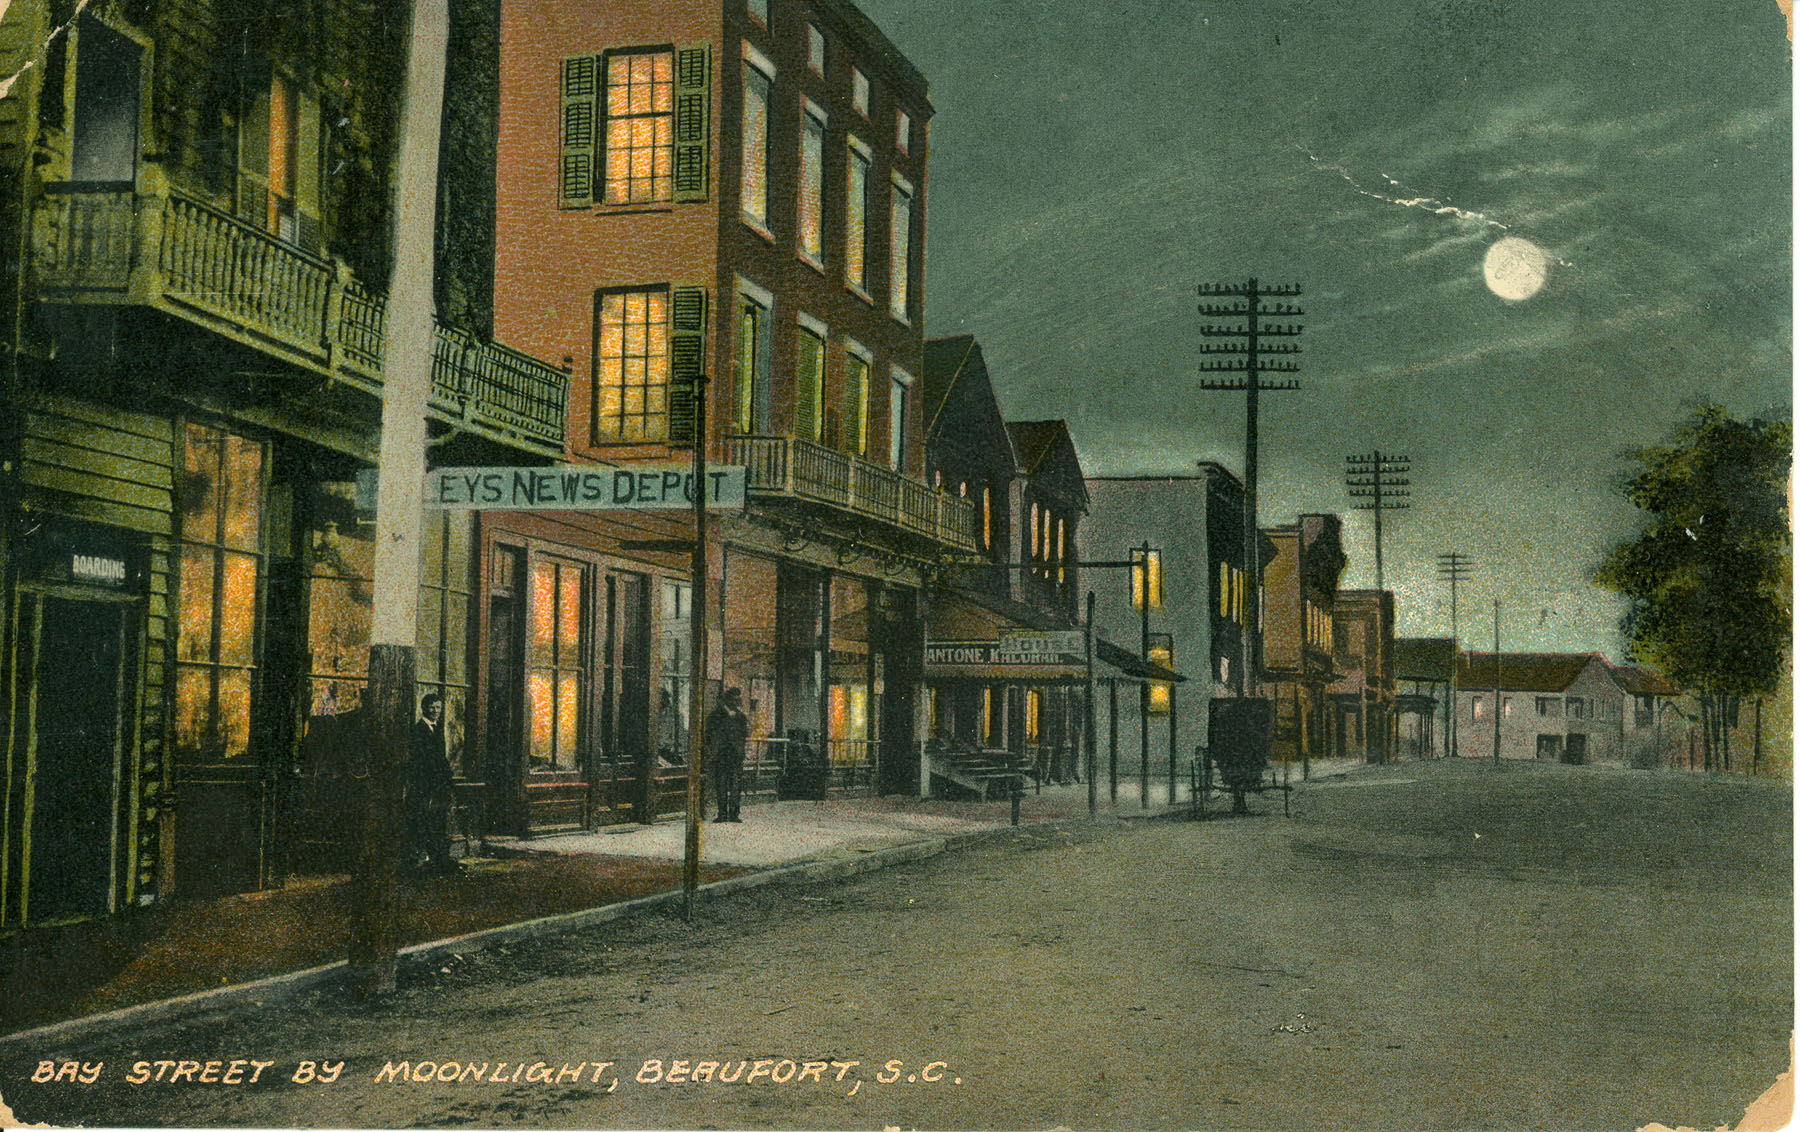 Bay Street by Moonlight, Beaufort, S.C.